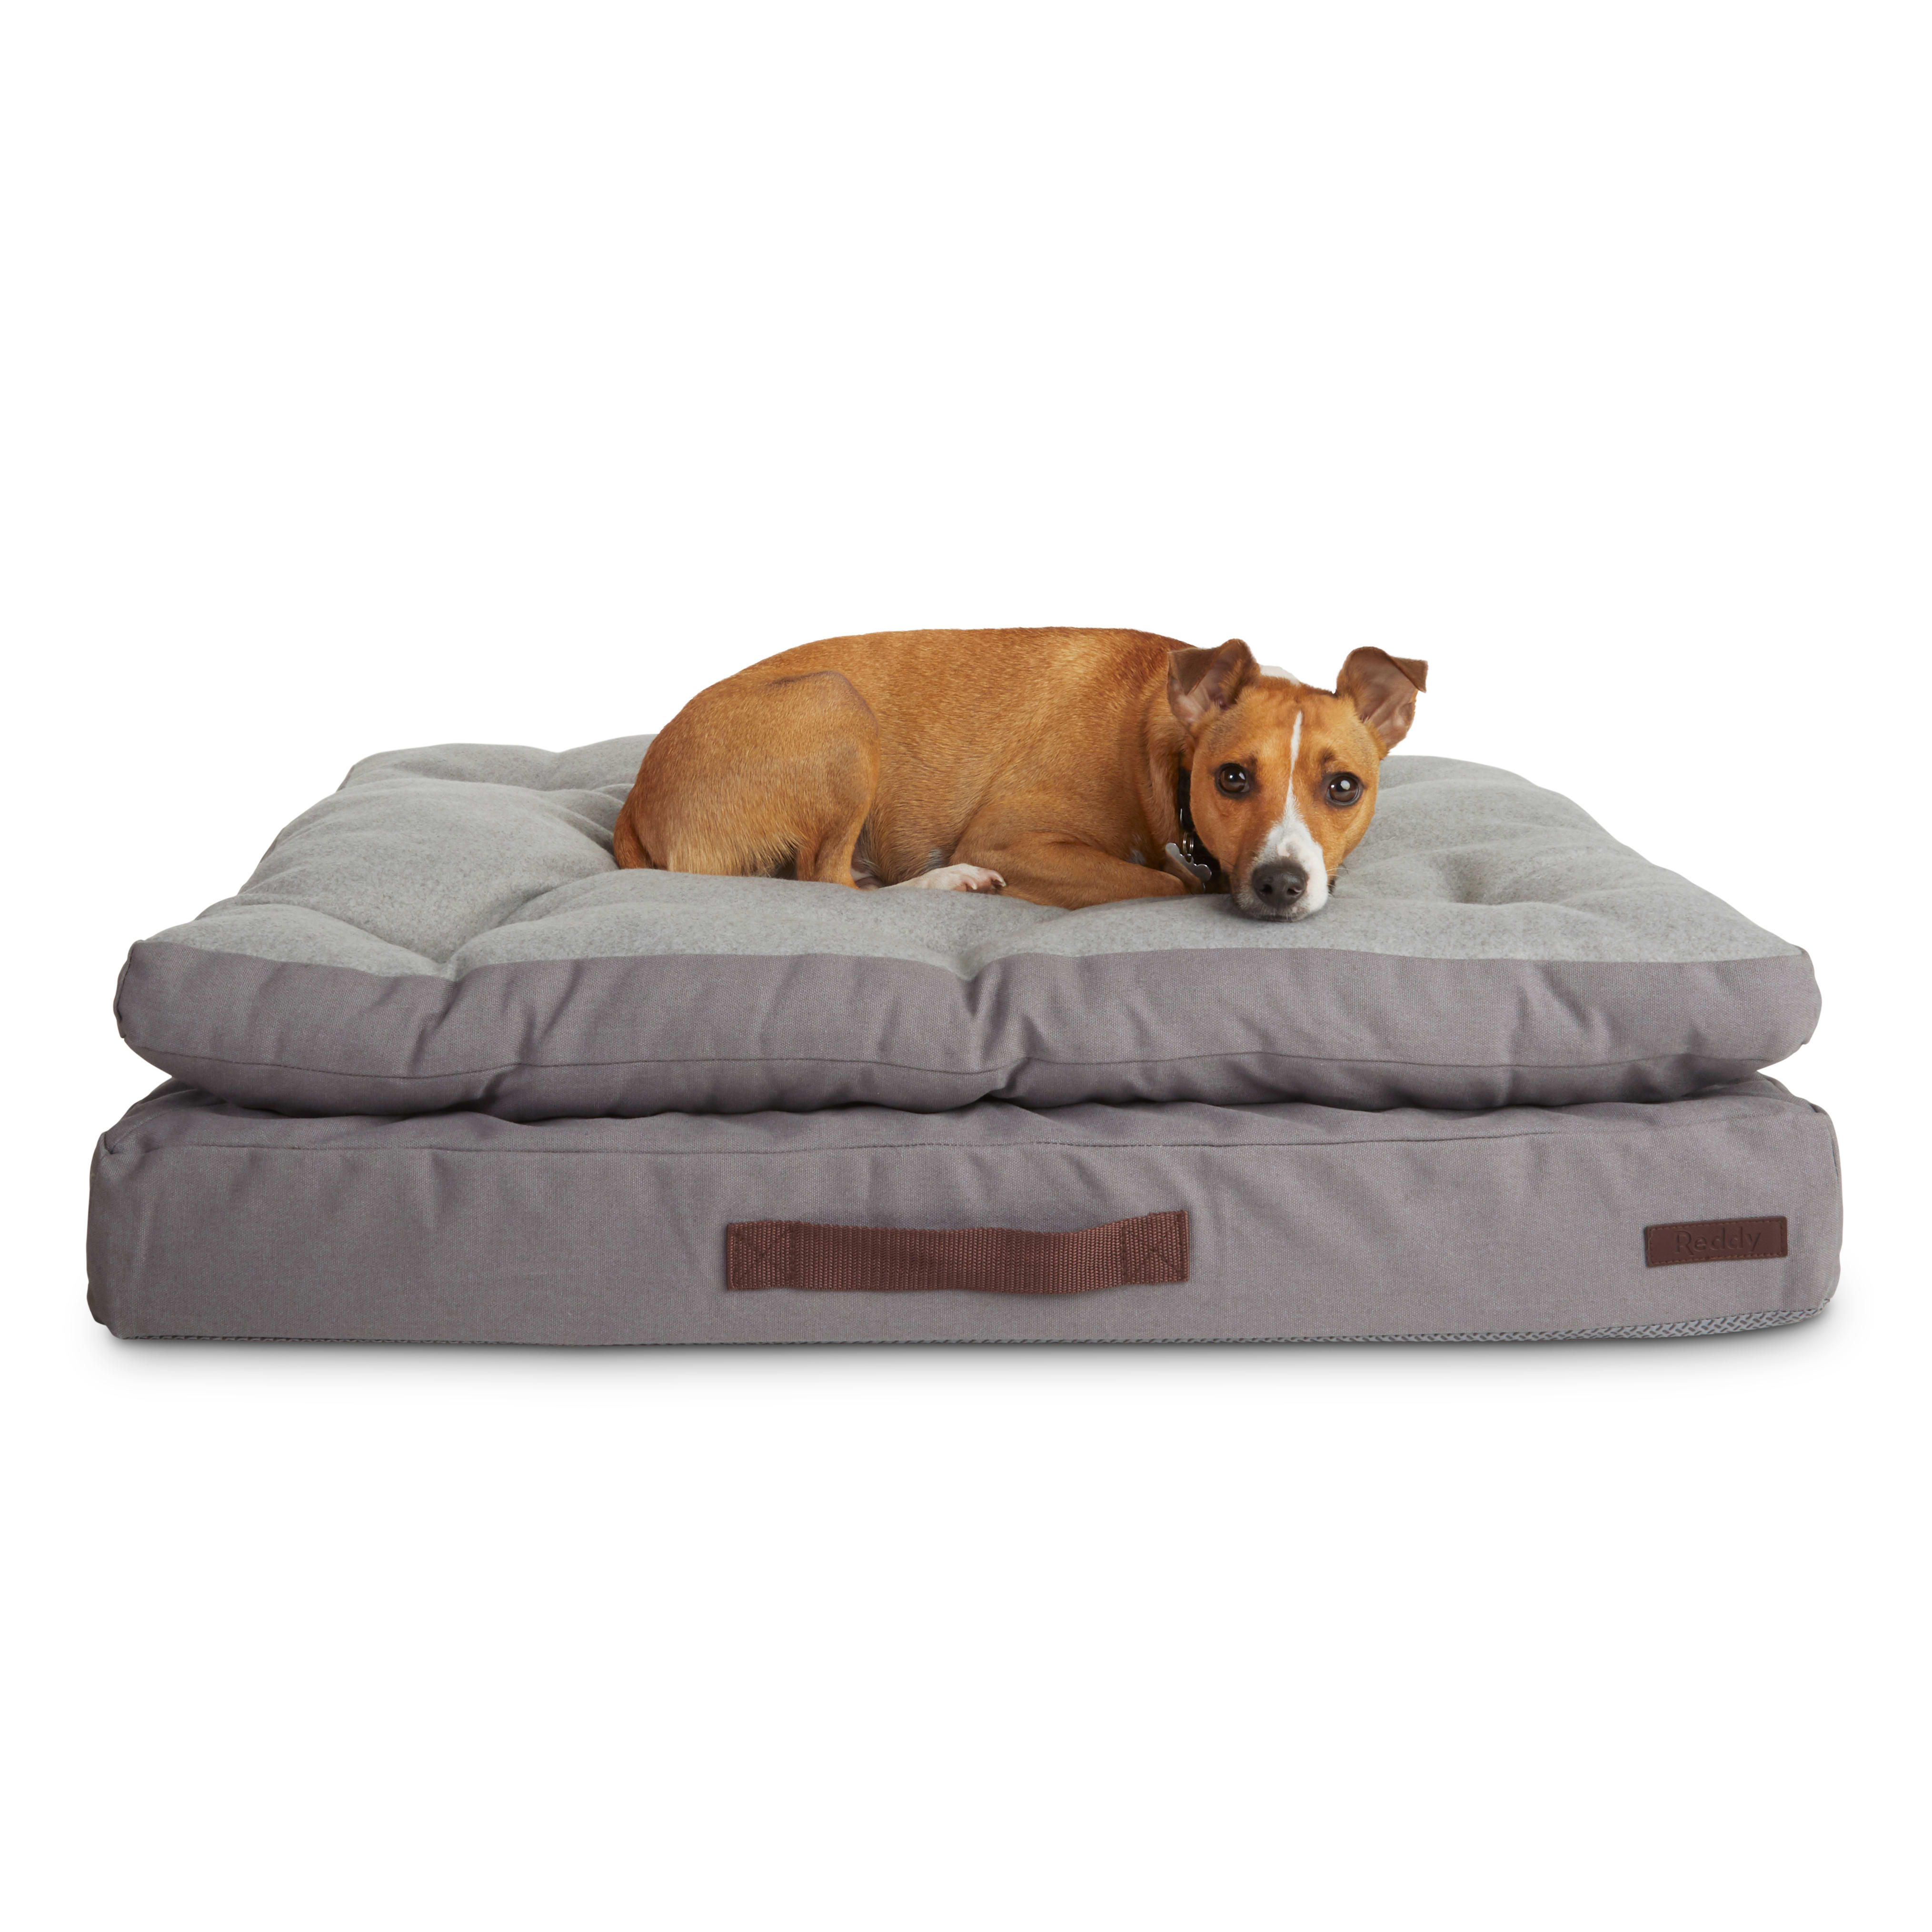 Reddy Grey Double Pillowtop Lounger Orthopedic Dog Bed 32 L X 24 W Petco